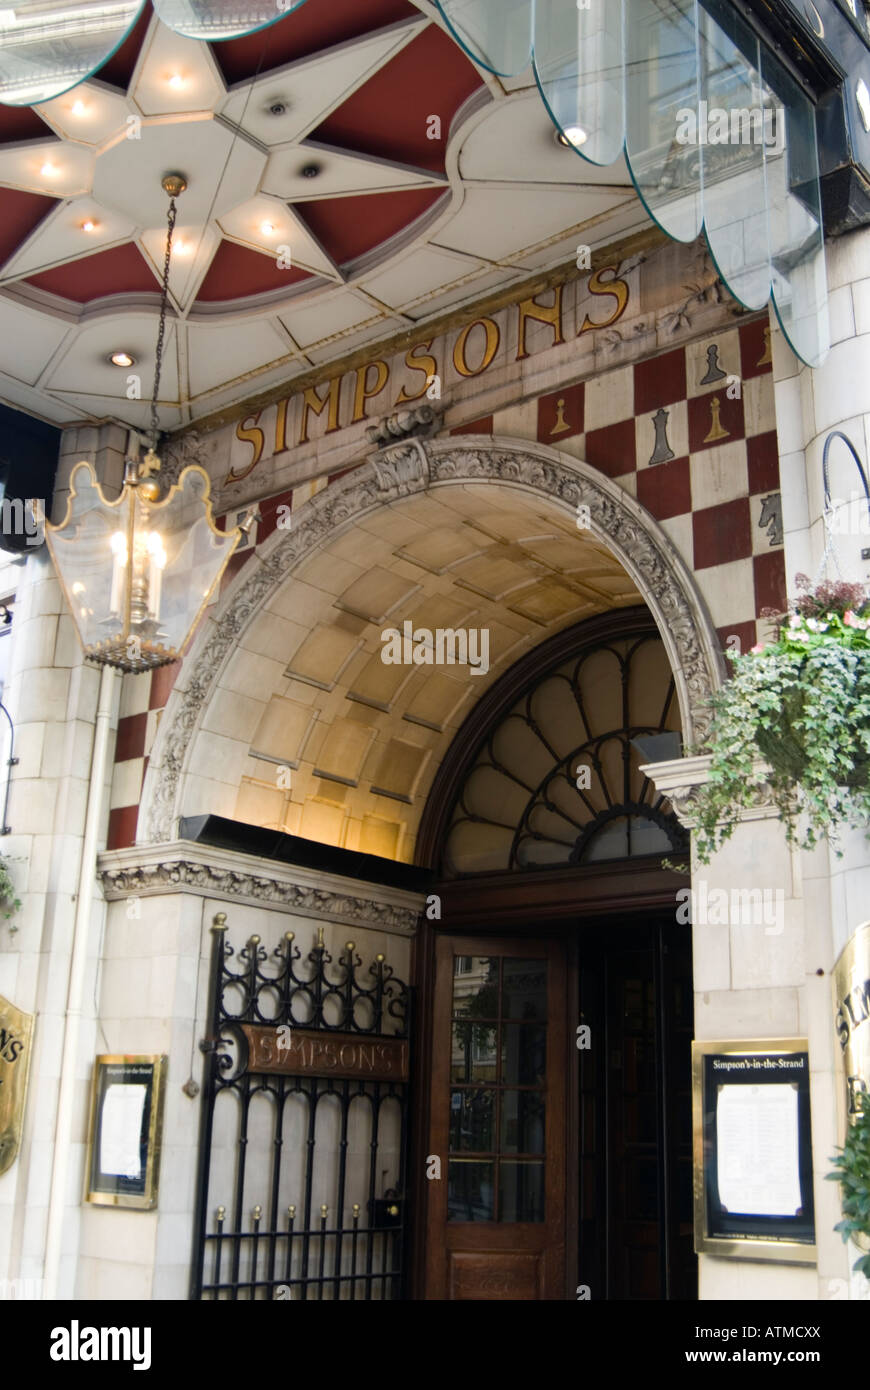 Entrance to Simpson's in the Strand, London, England, UK - Stock Image